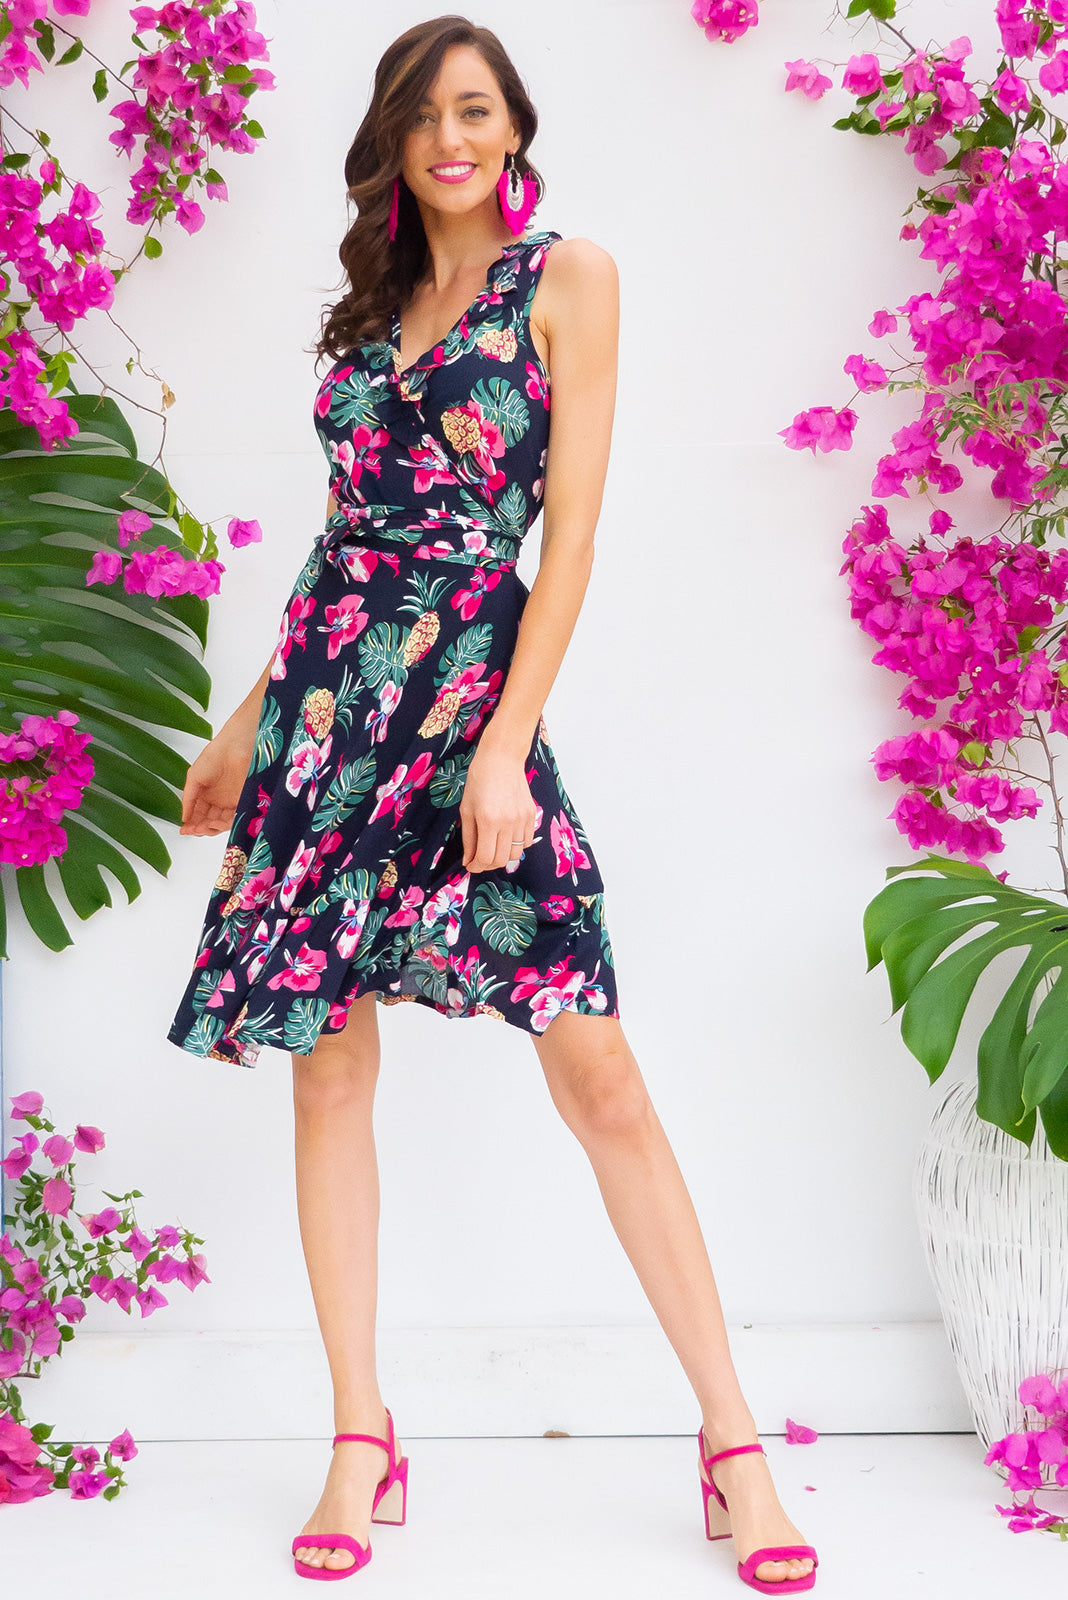 Paloma Navy Pineapple Wrap Dress features a flattering wrap around shape, sleeveless bodice with a frill and comes in a dark navy pineapple and tropical flower print woven rayon